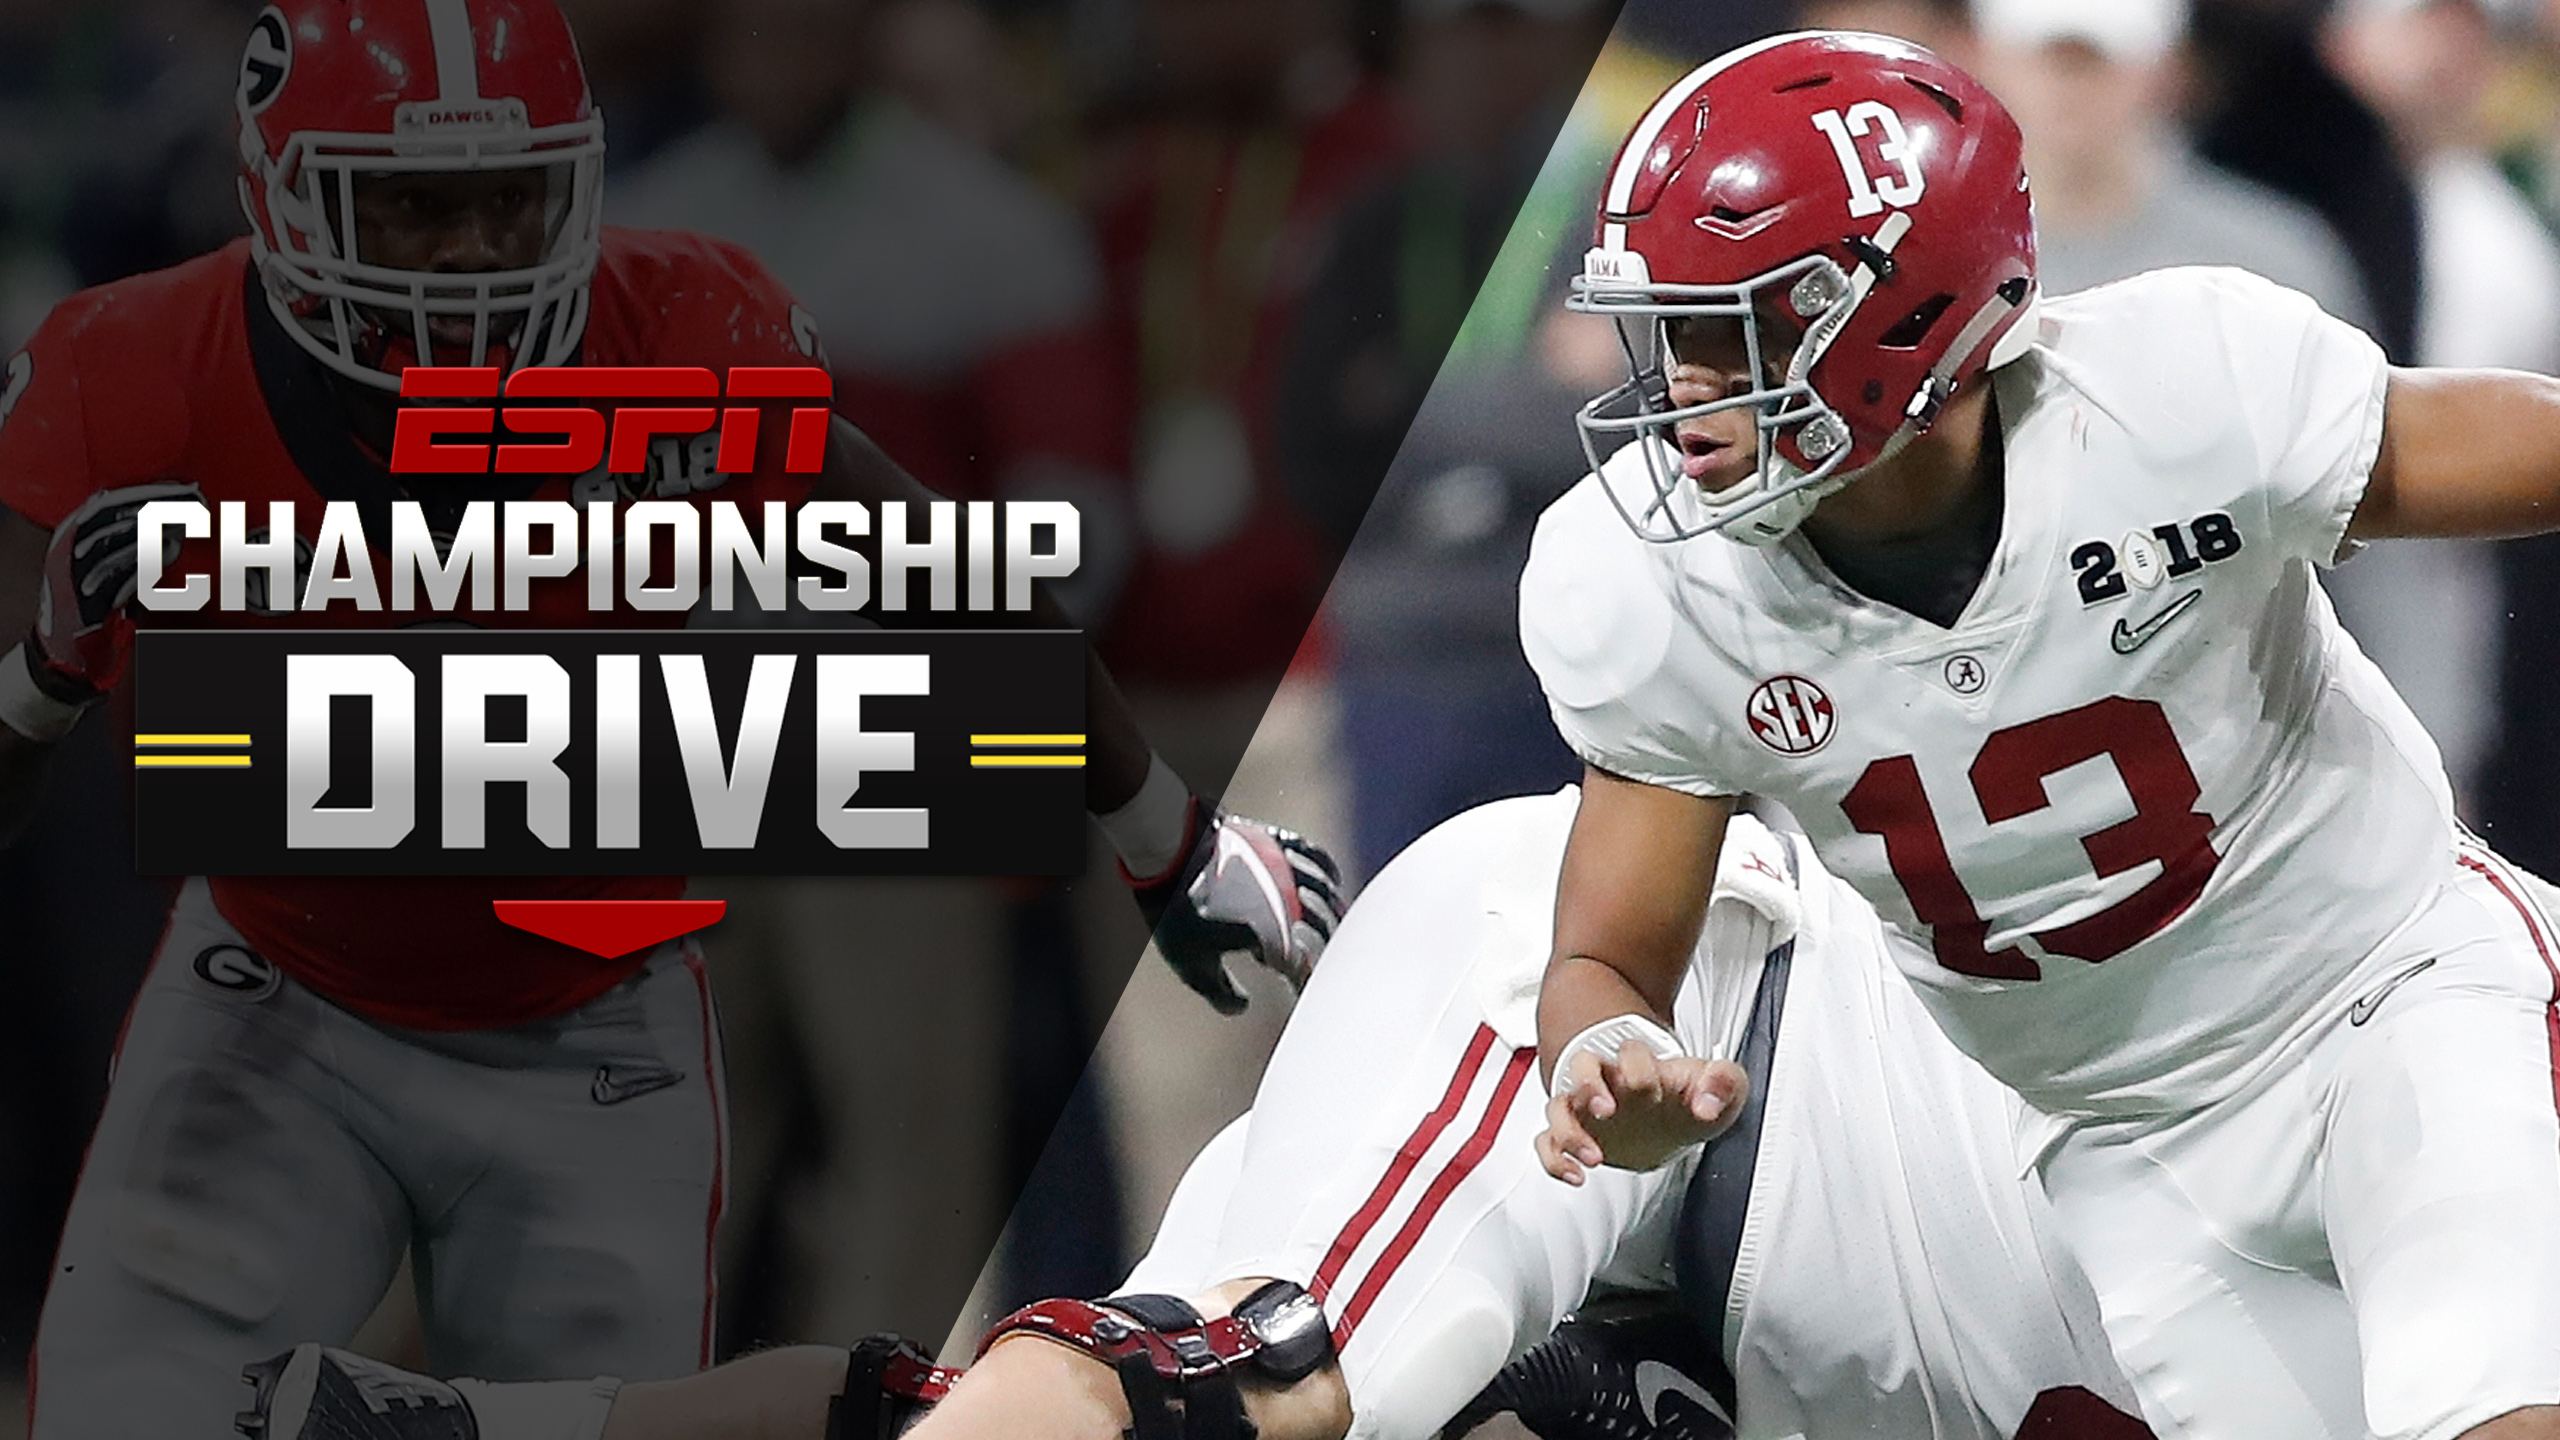 Thu, 12/6 - Championship Drive: Path to the Playoff Presented by AT&T